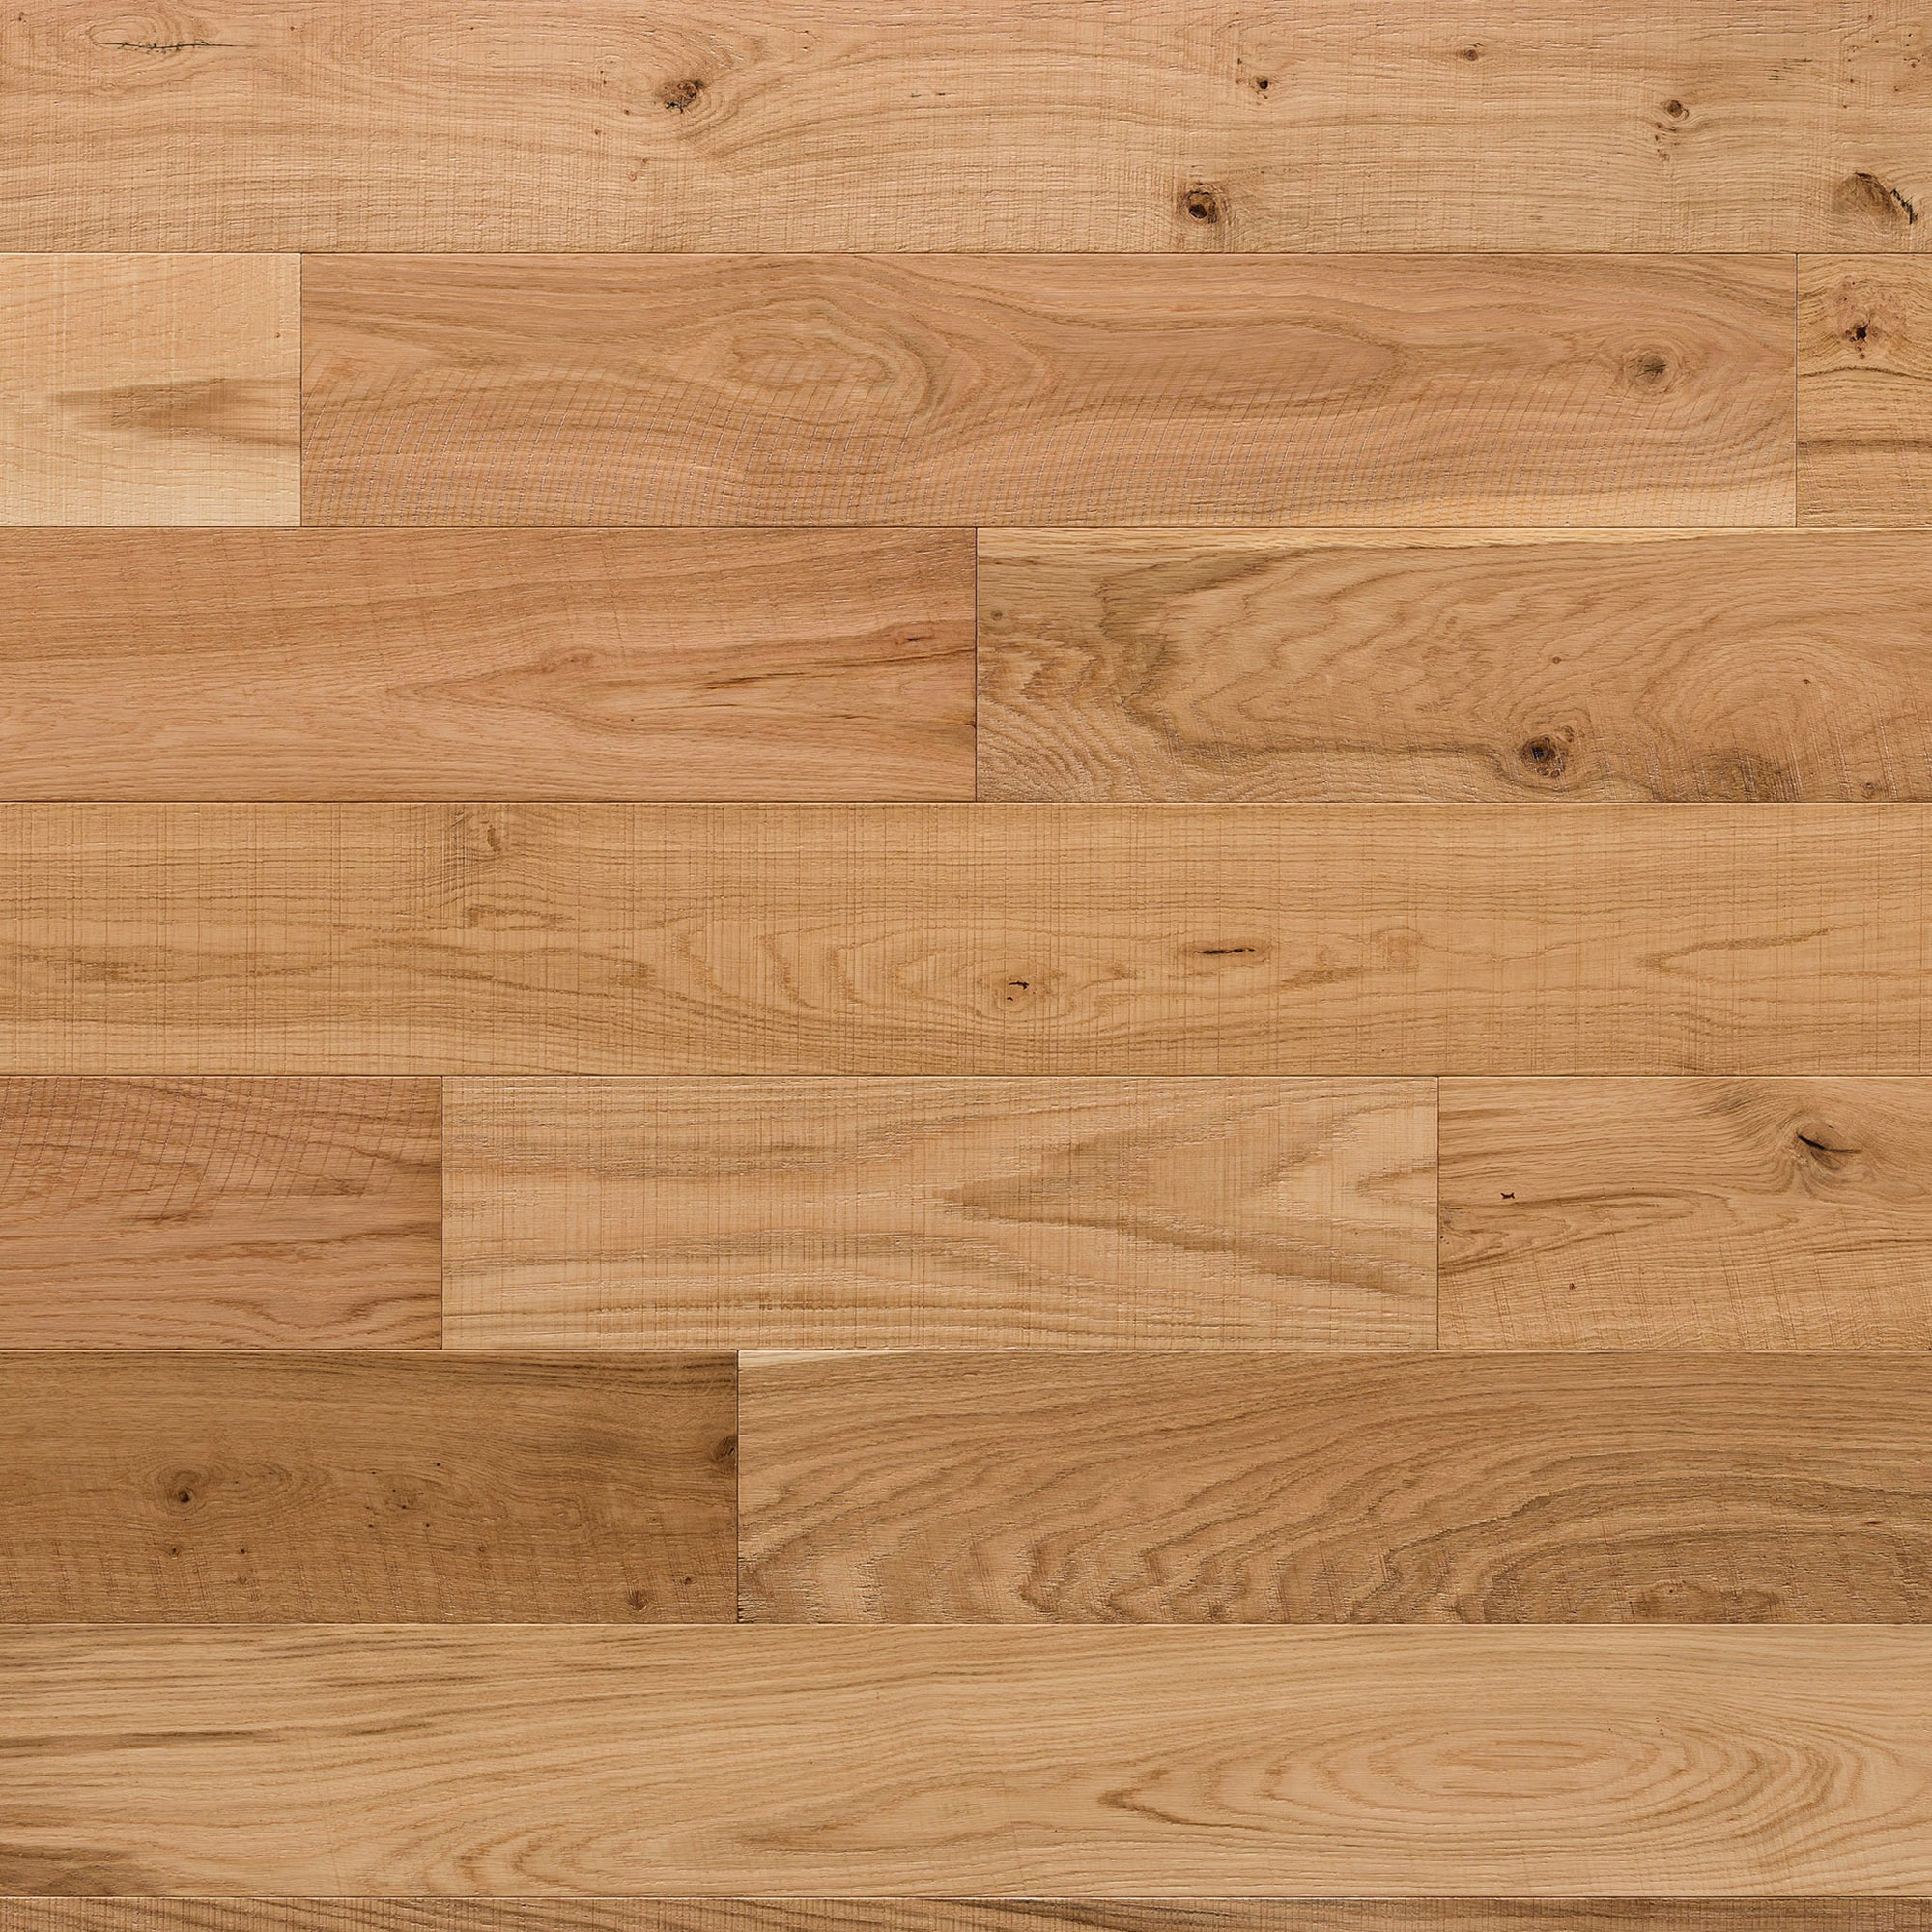 Kentwood Brushed Oak Milltown Natural Frontier, a distressed natural oak with variation in a matte finish available from Alberta Hardwood Flooring Edmonton and Calgary.